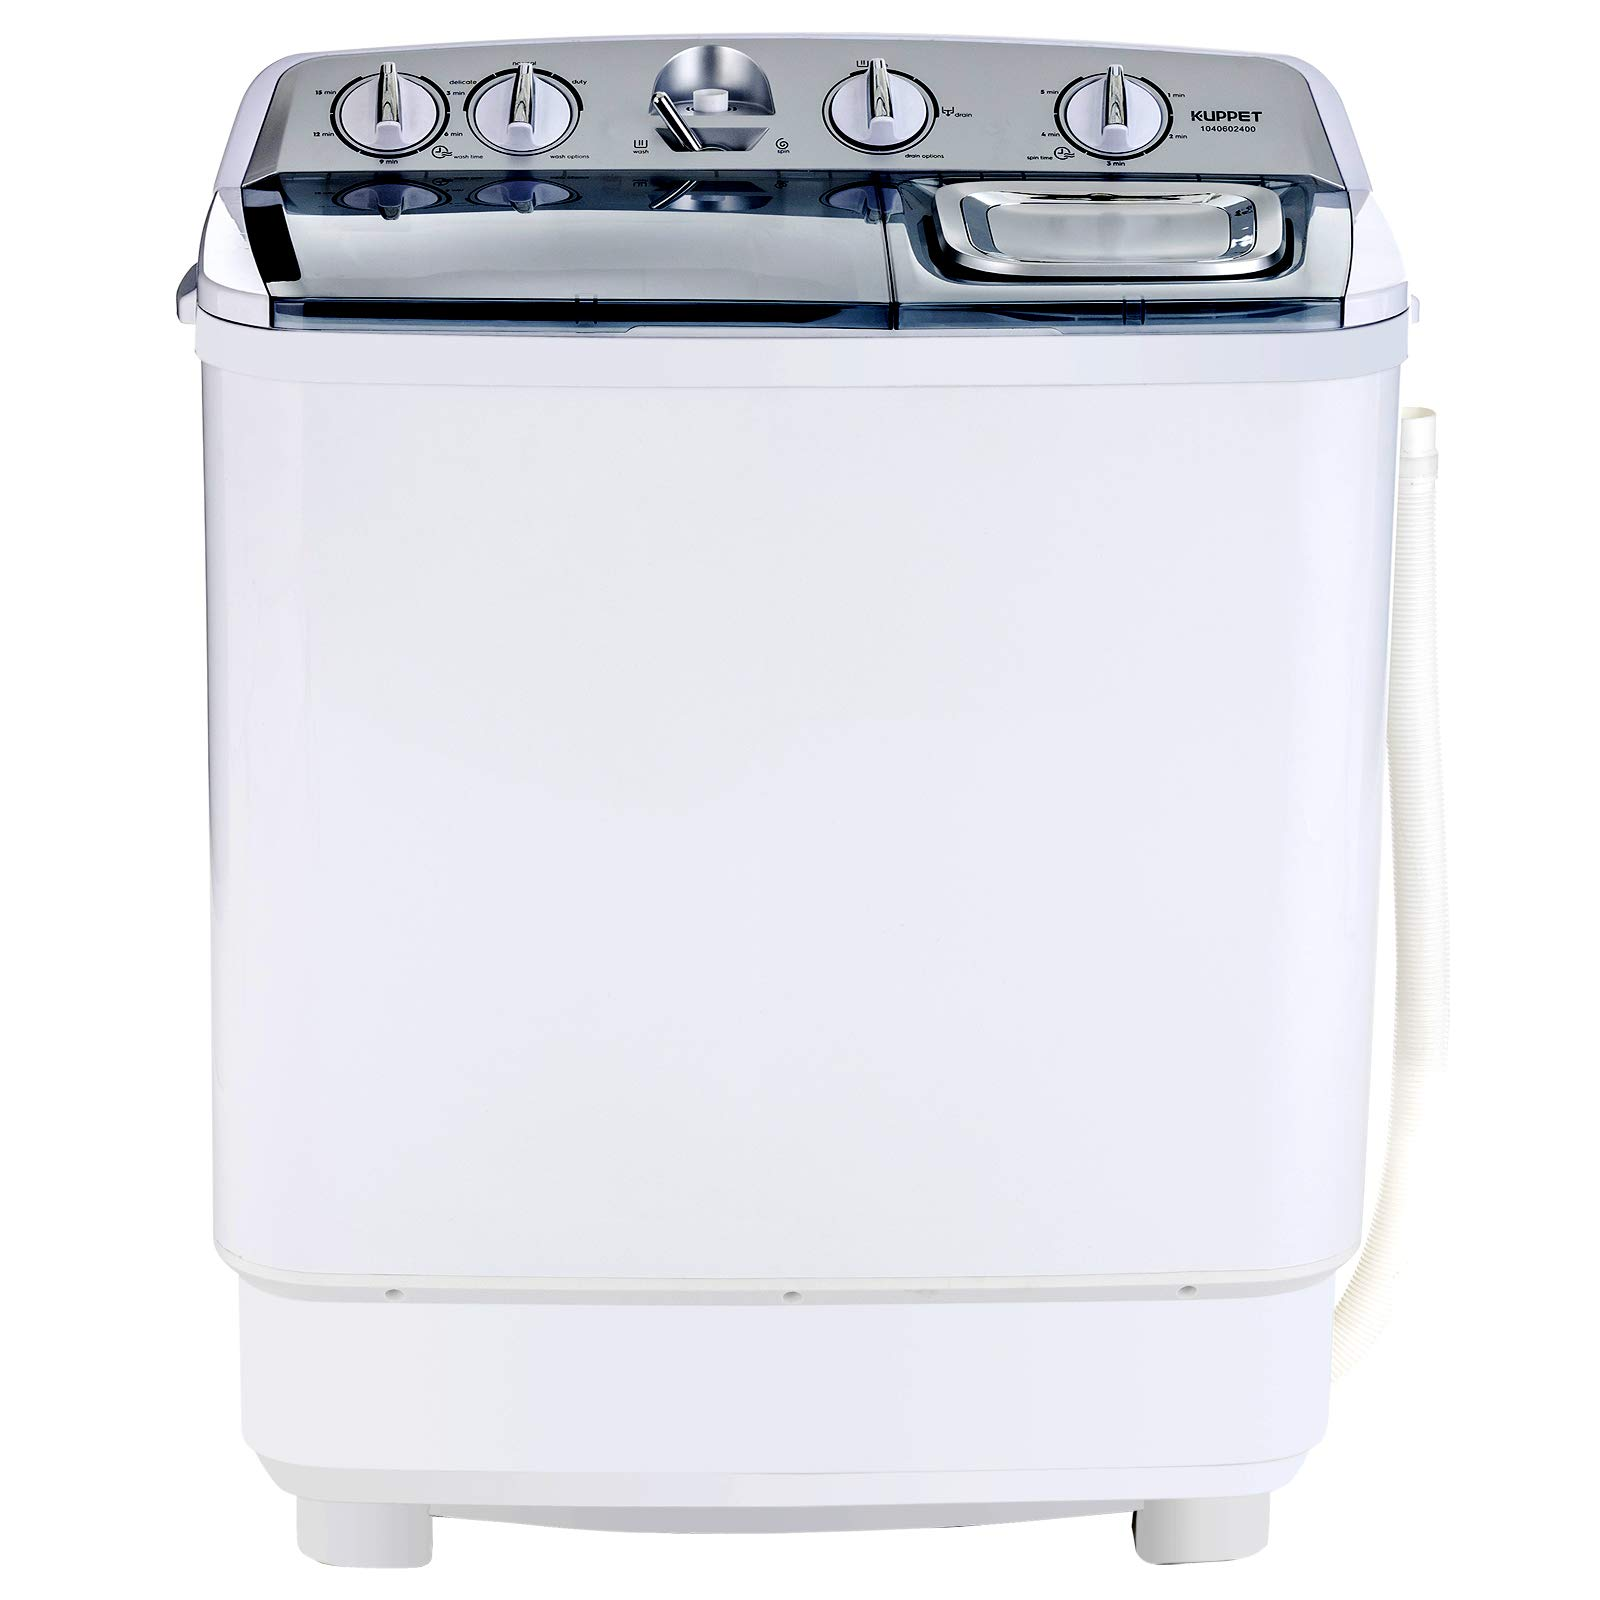 KUPPET Compact Twin Tub Portable Mini Washing Machine 21lbs Capacity, Washer(13lbs)&Spiner(8lbs)/Semi-Automatic (White&Silver)